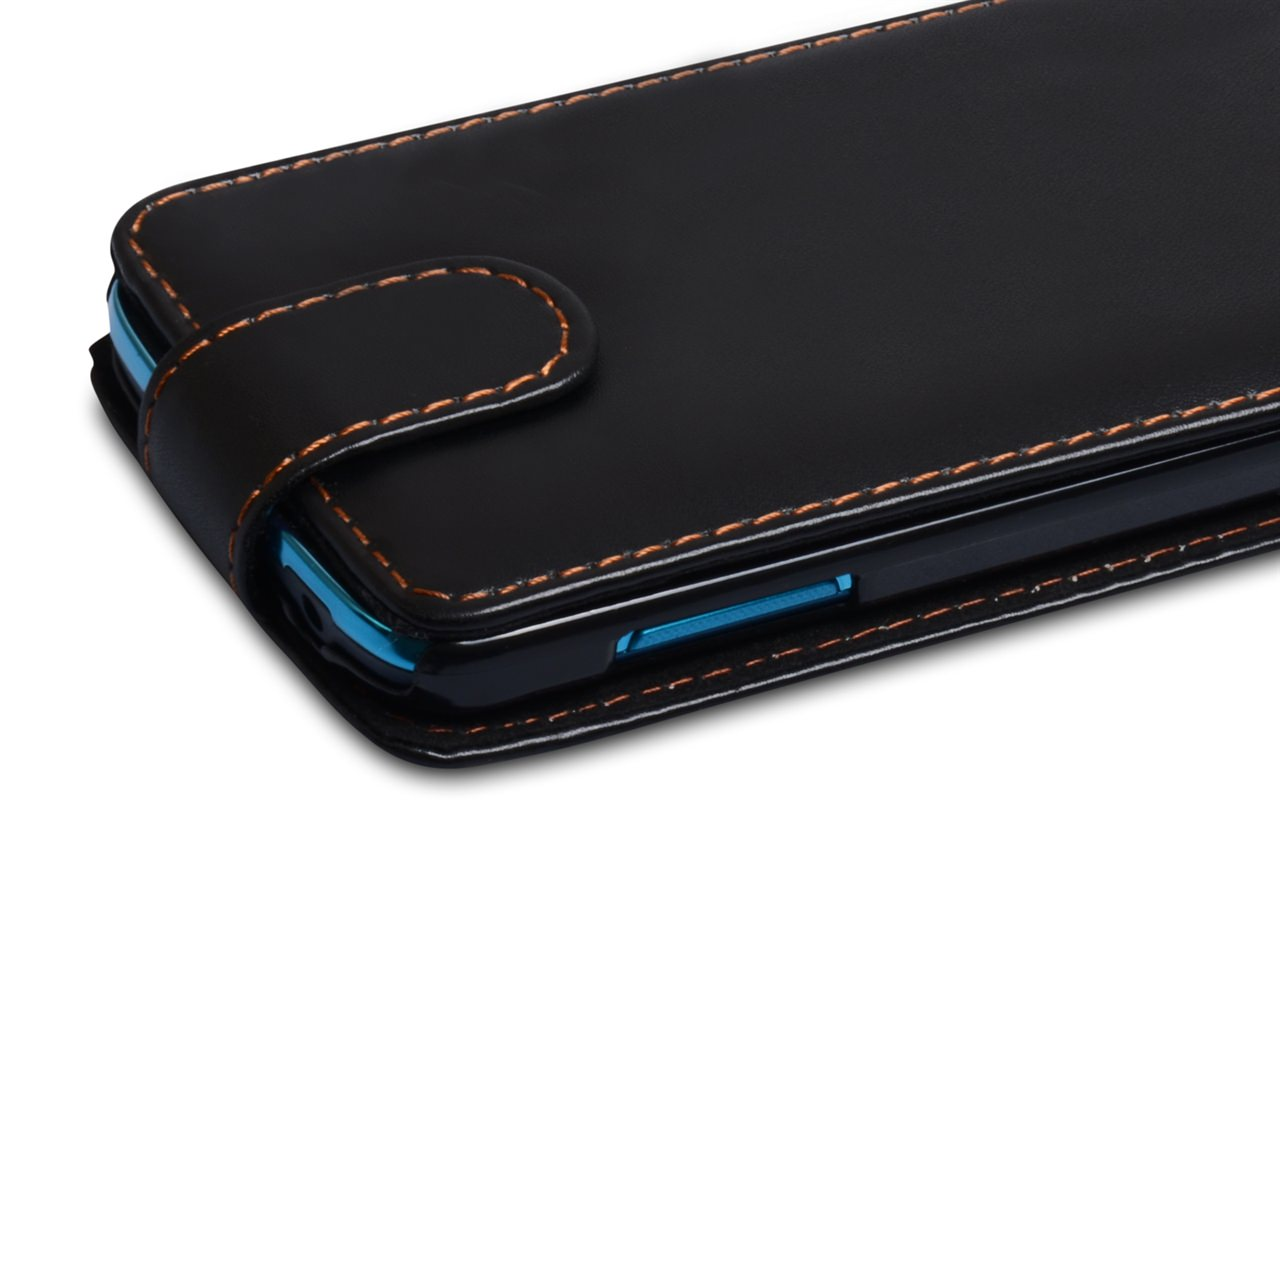 YouSave Samsung Galaxy S4 Active Leather Effect Flip Case - Black